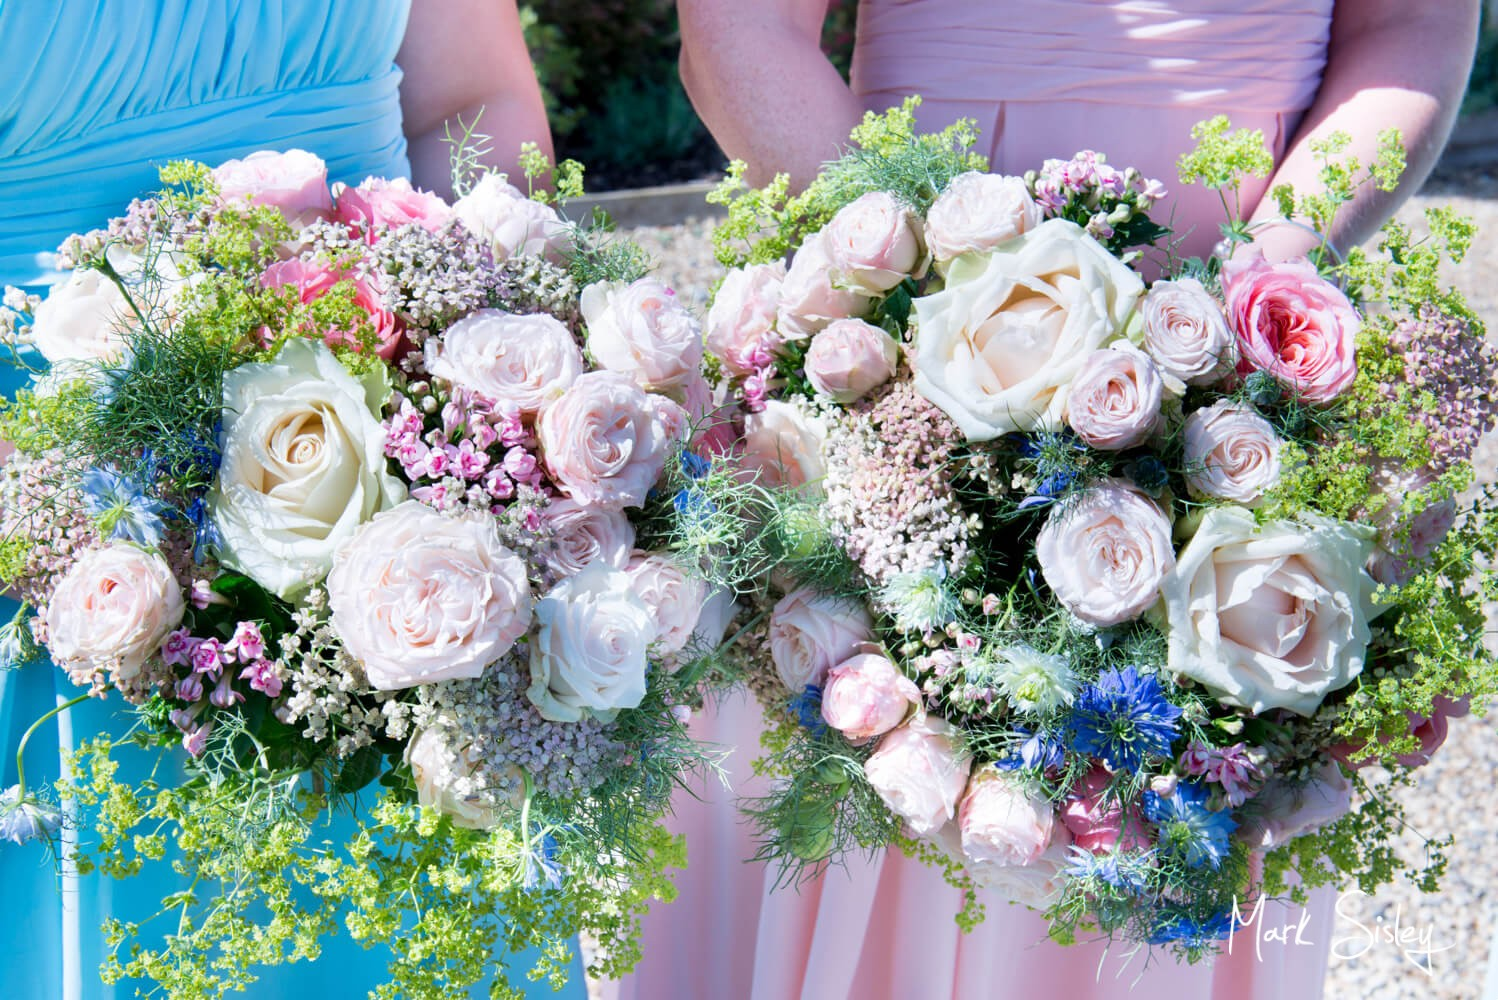 Bridesmaids flowers at Notley Tythe Barn wedding